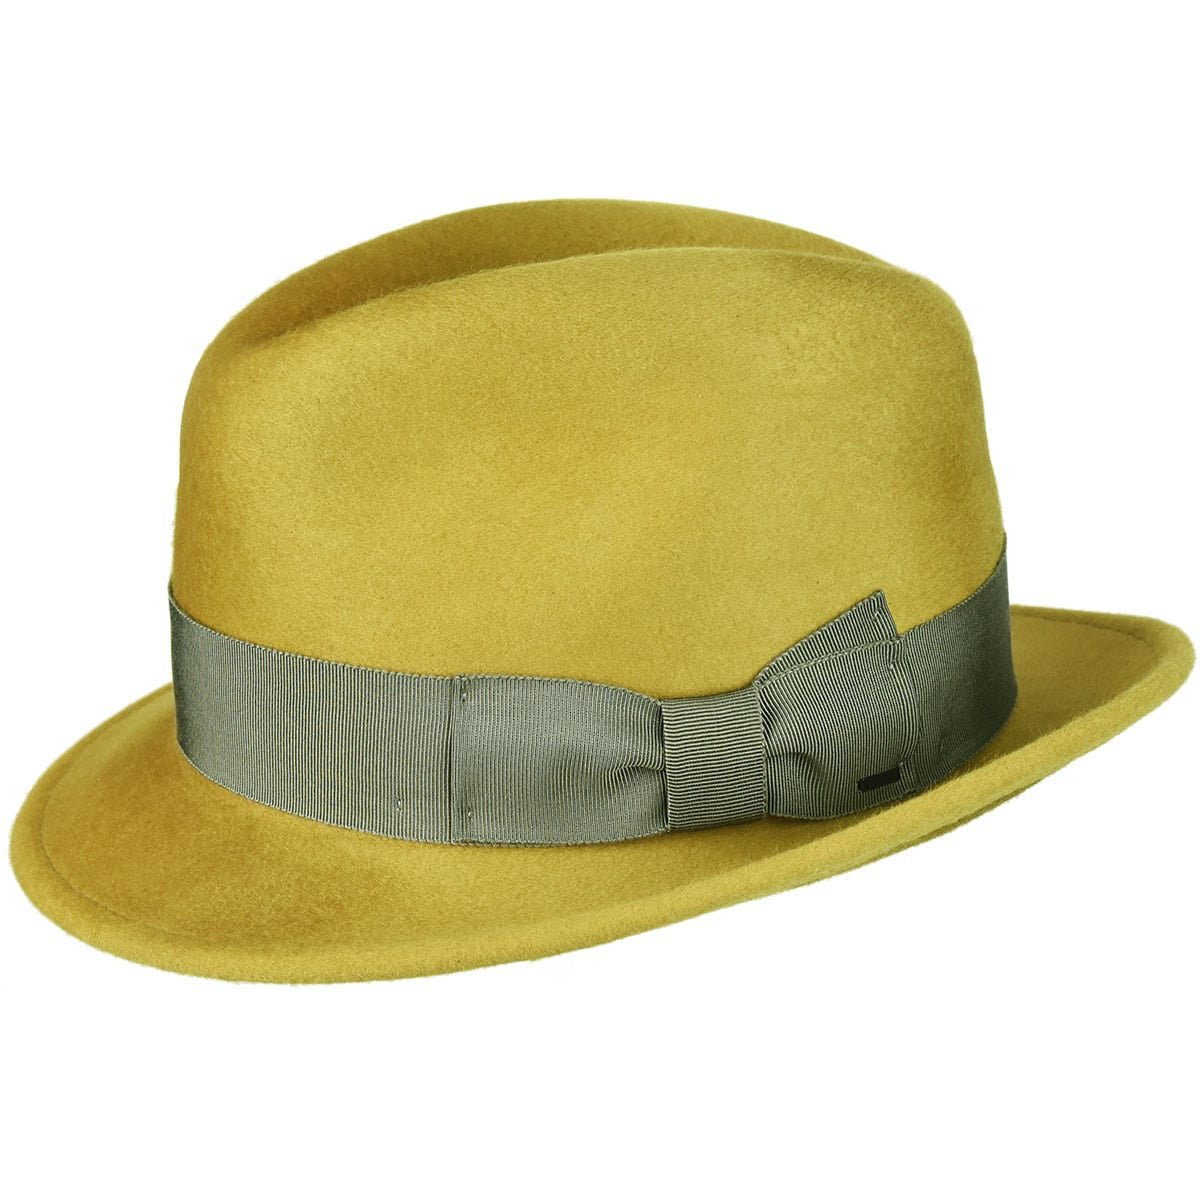 1960s – 70s Style Men's Hats Riff Fedora $133.00 AT vintagedancer.com